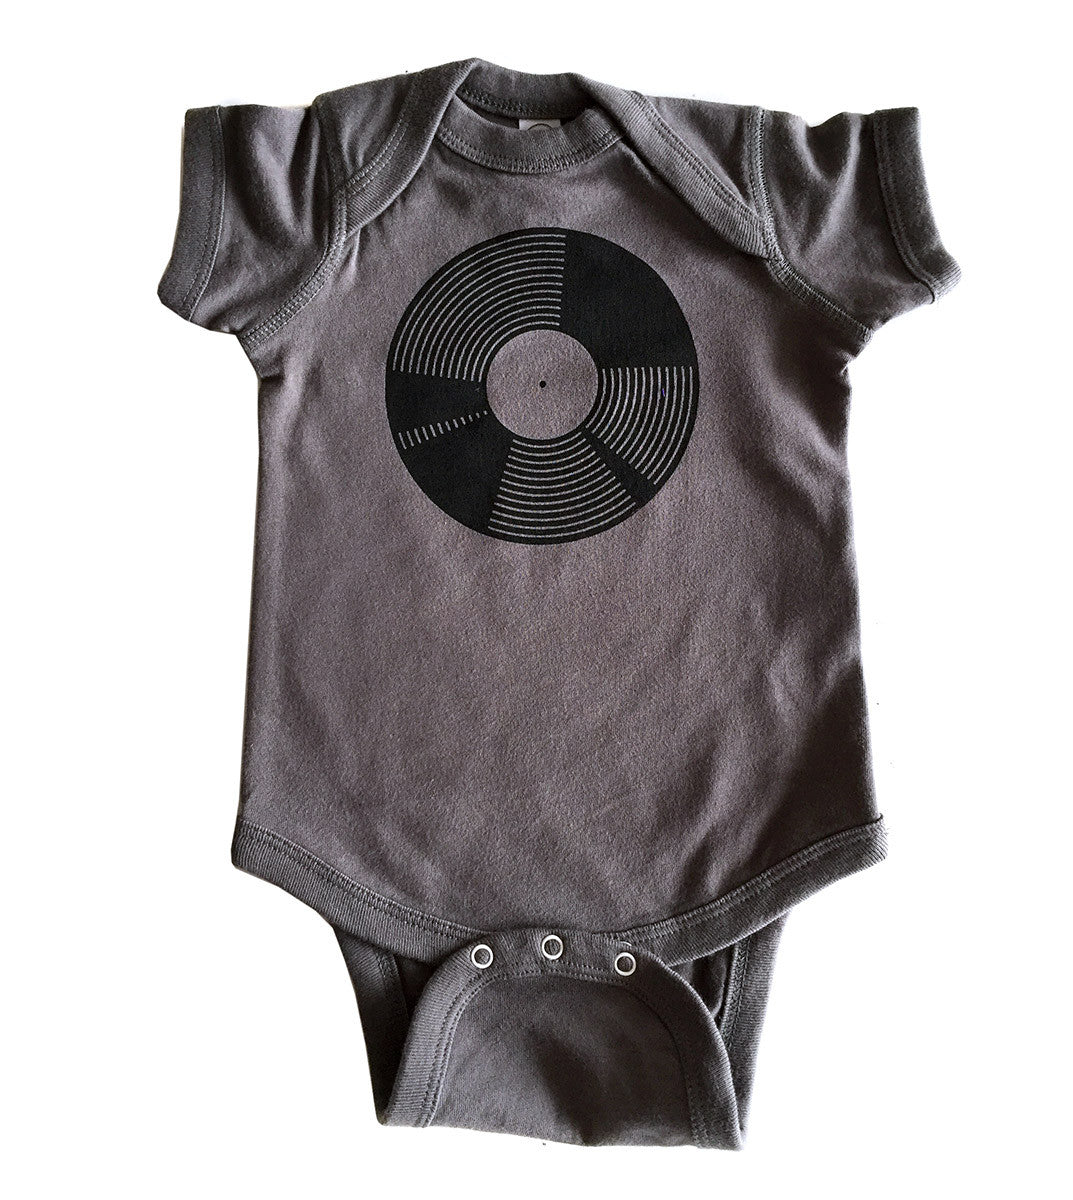 Vinyl Record Baby Snapsuit Well Done Goods